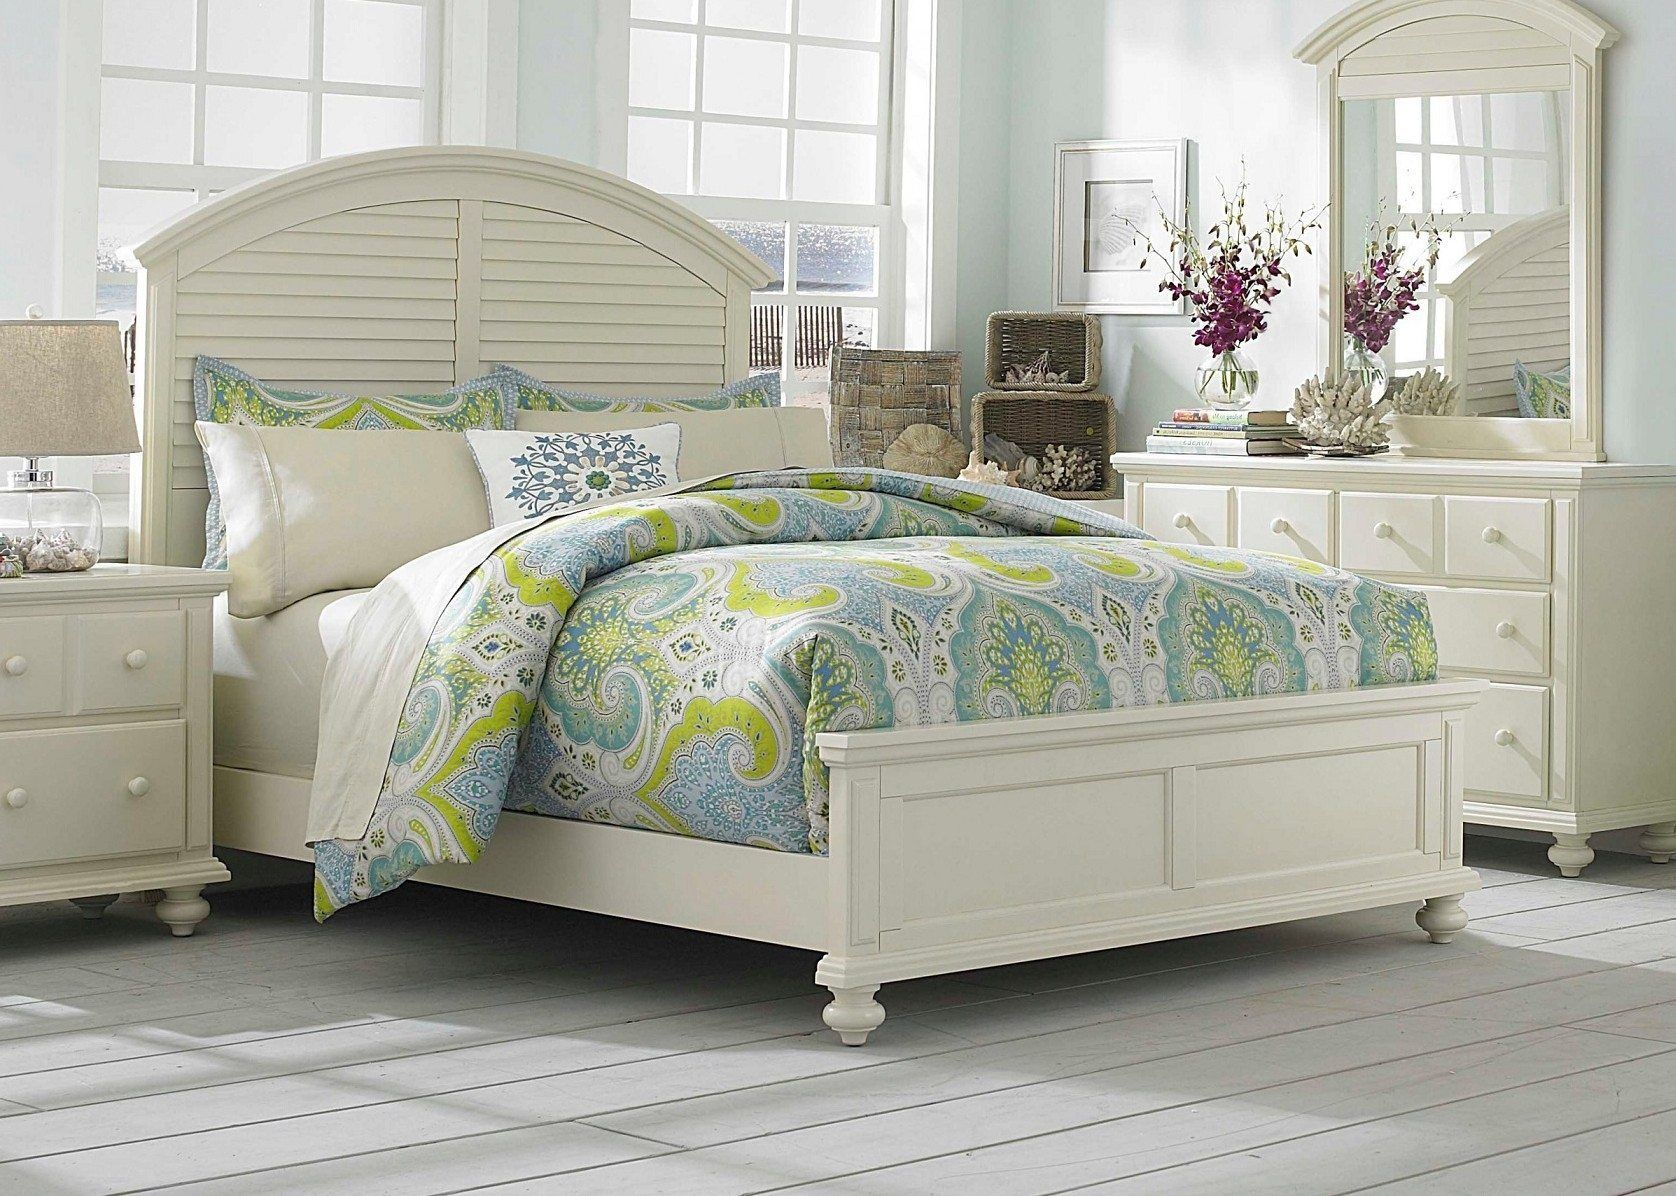 Elegant Style Of Cottage Style Bedroom Sets is also a kind ...